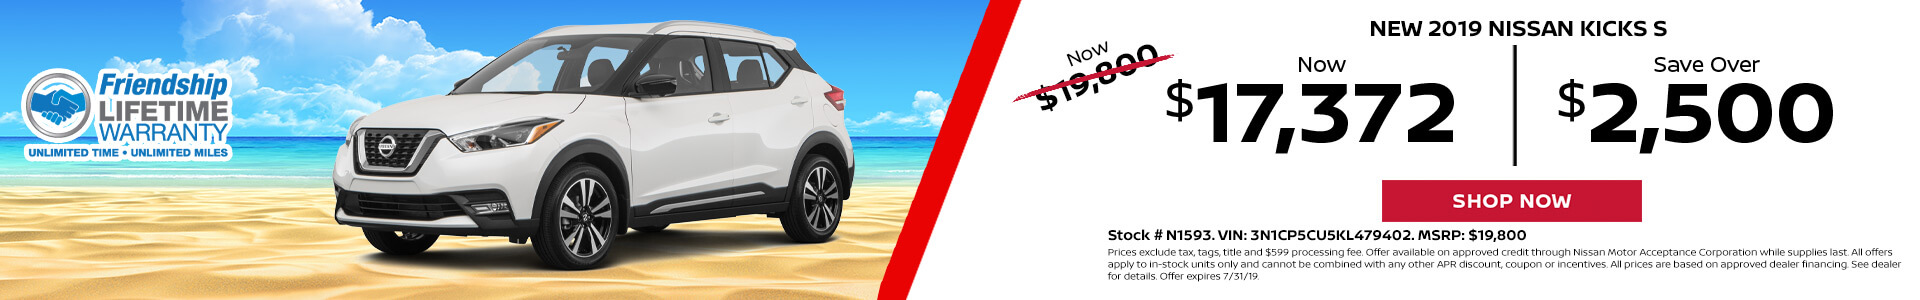 Nissan Kicks $17,372 Purchase